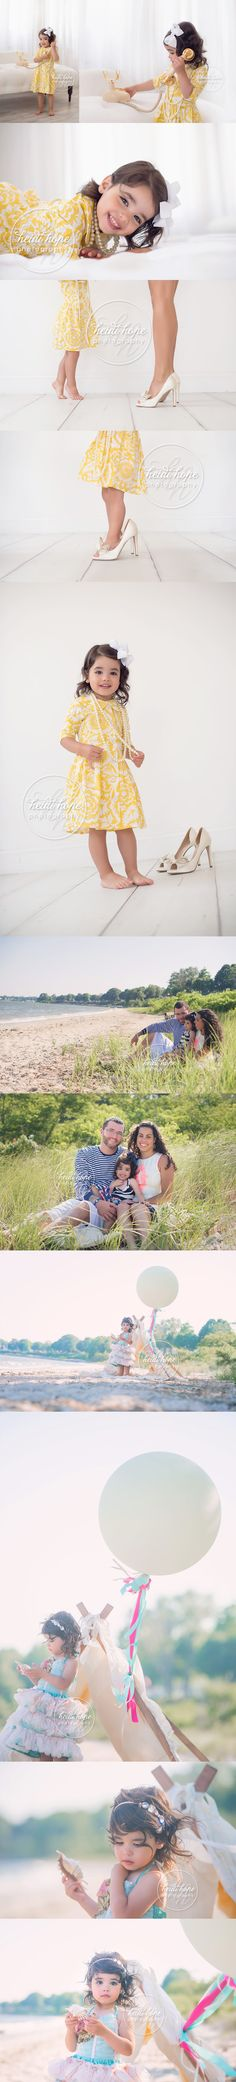 two year old birthday session with family on the beach!